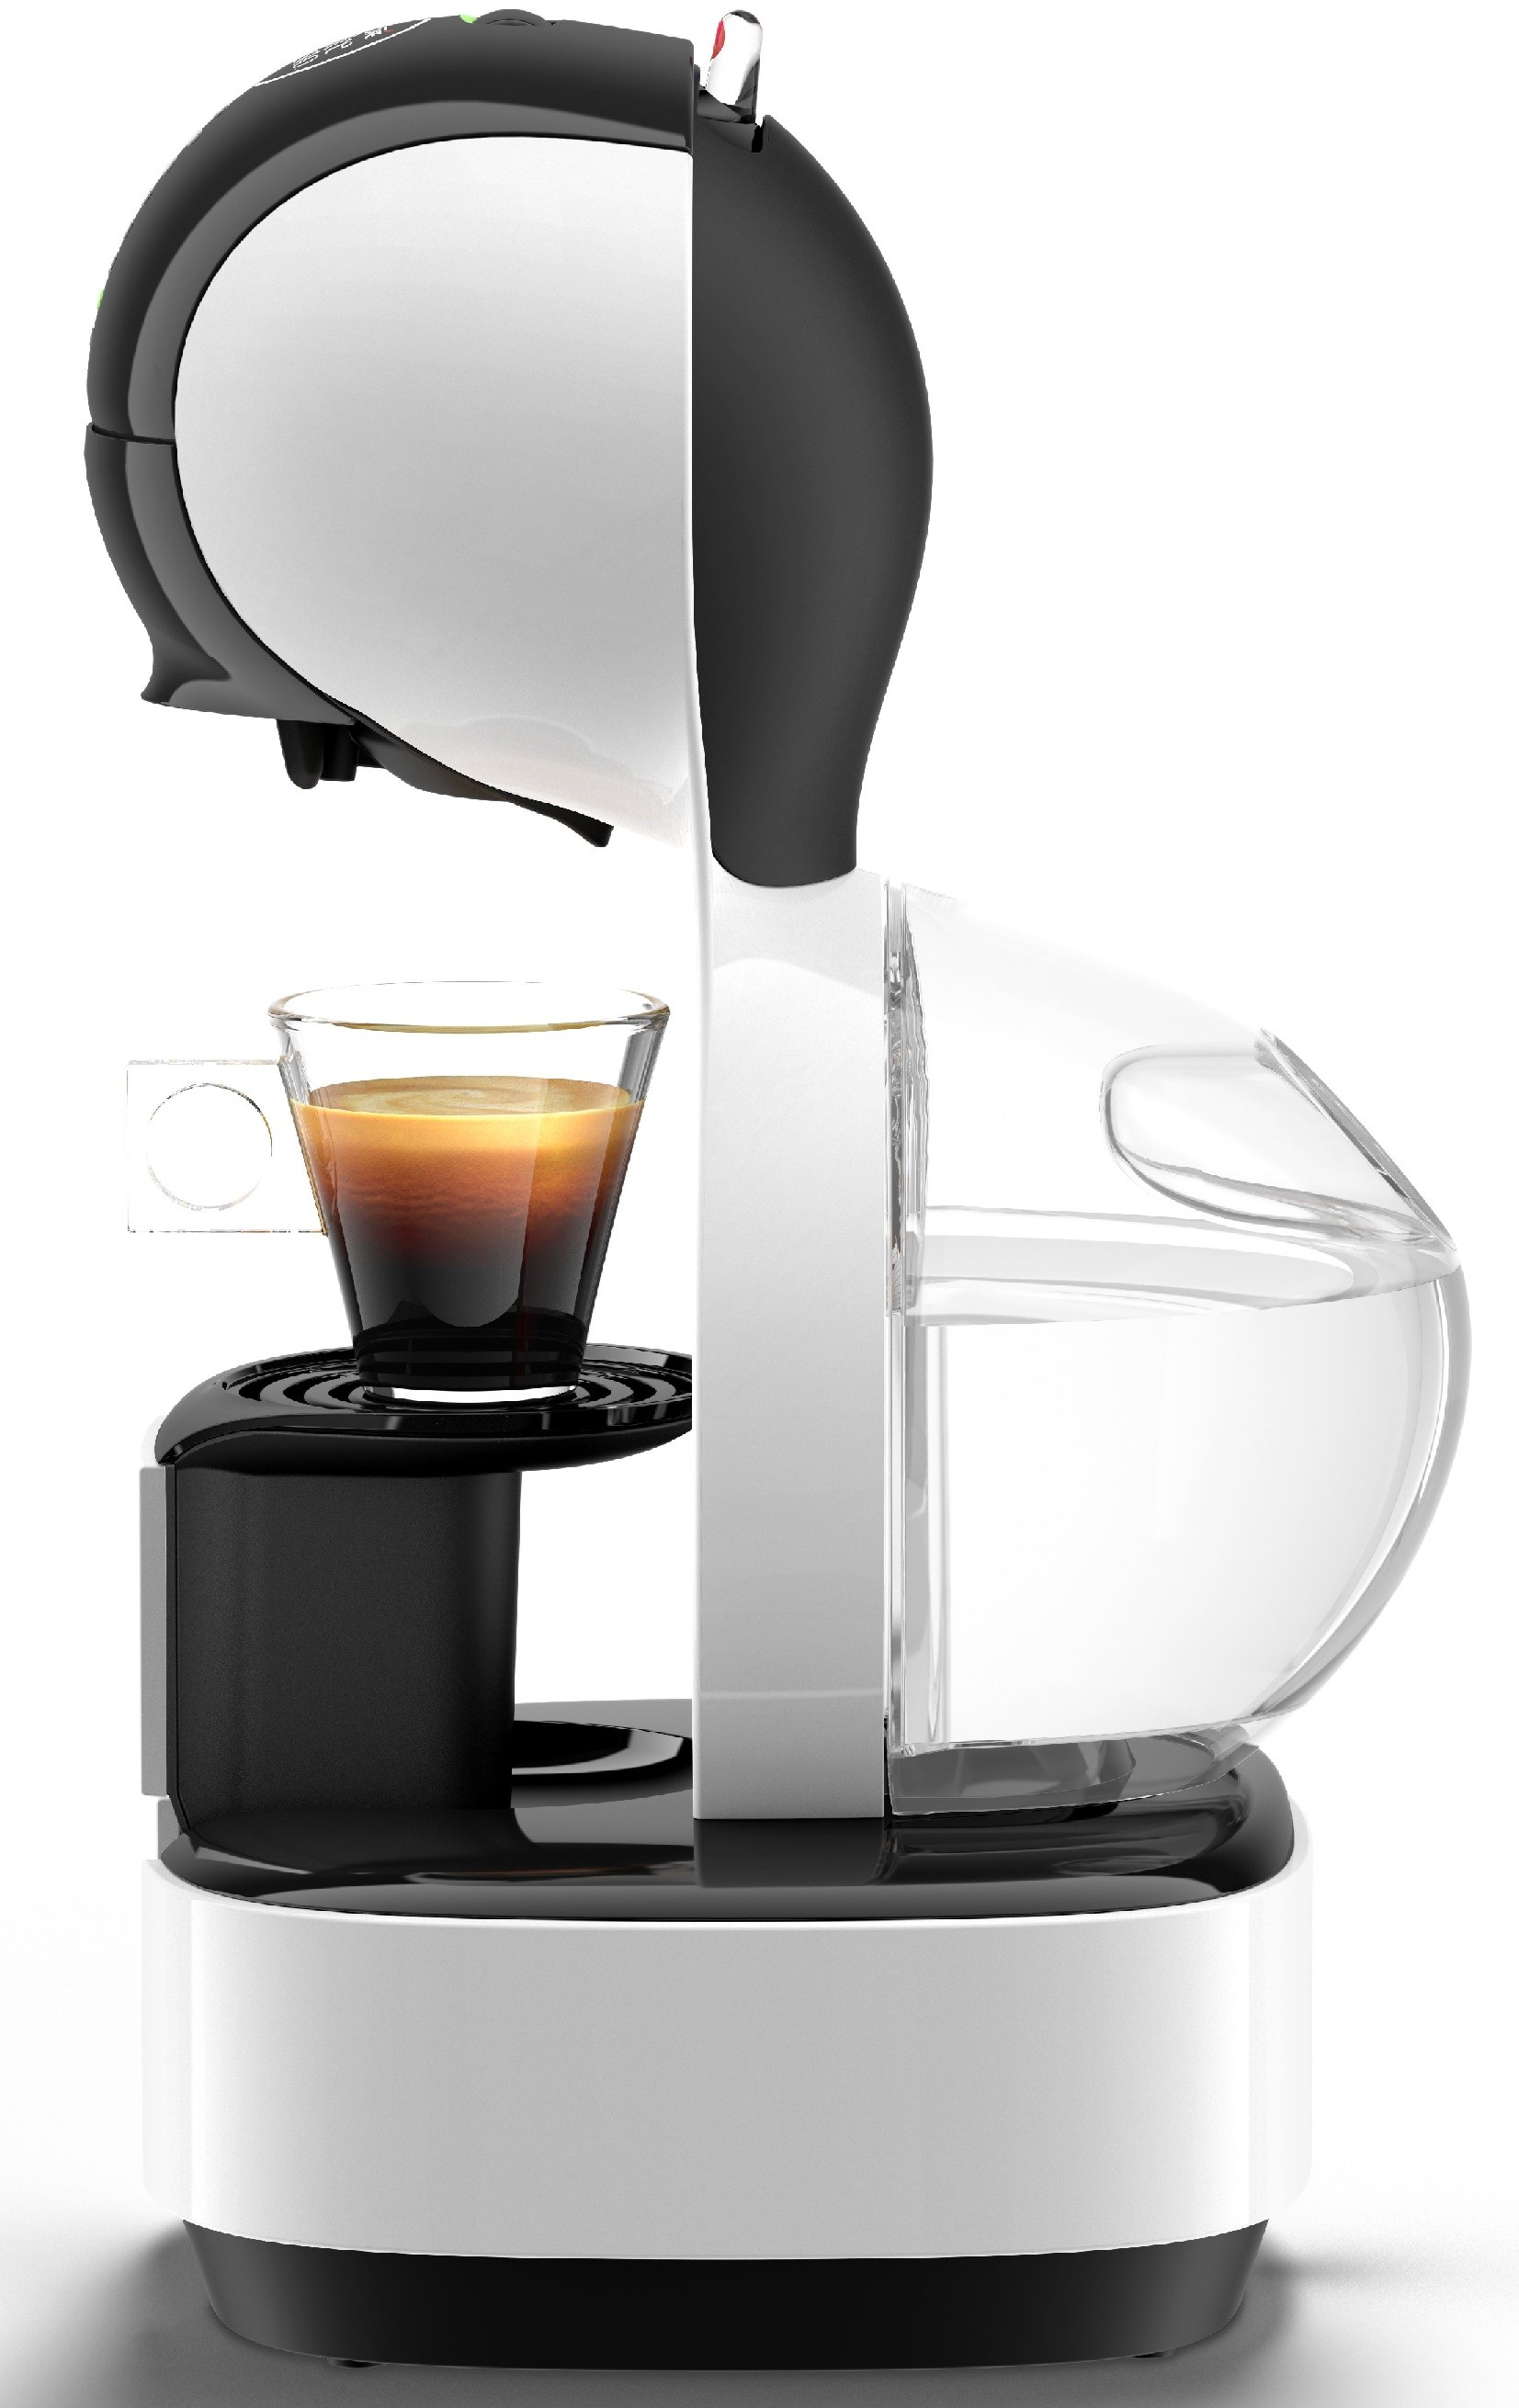 pulsat krups dolce gusto lumio blanc yy3042fd cafetiere yy 3042 fd pulsat. Black Bedroom Furniture Sets. Home Design Ideas